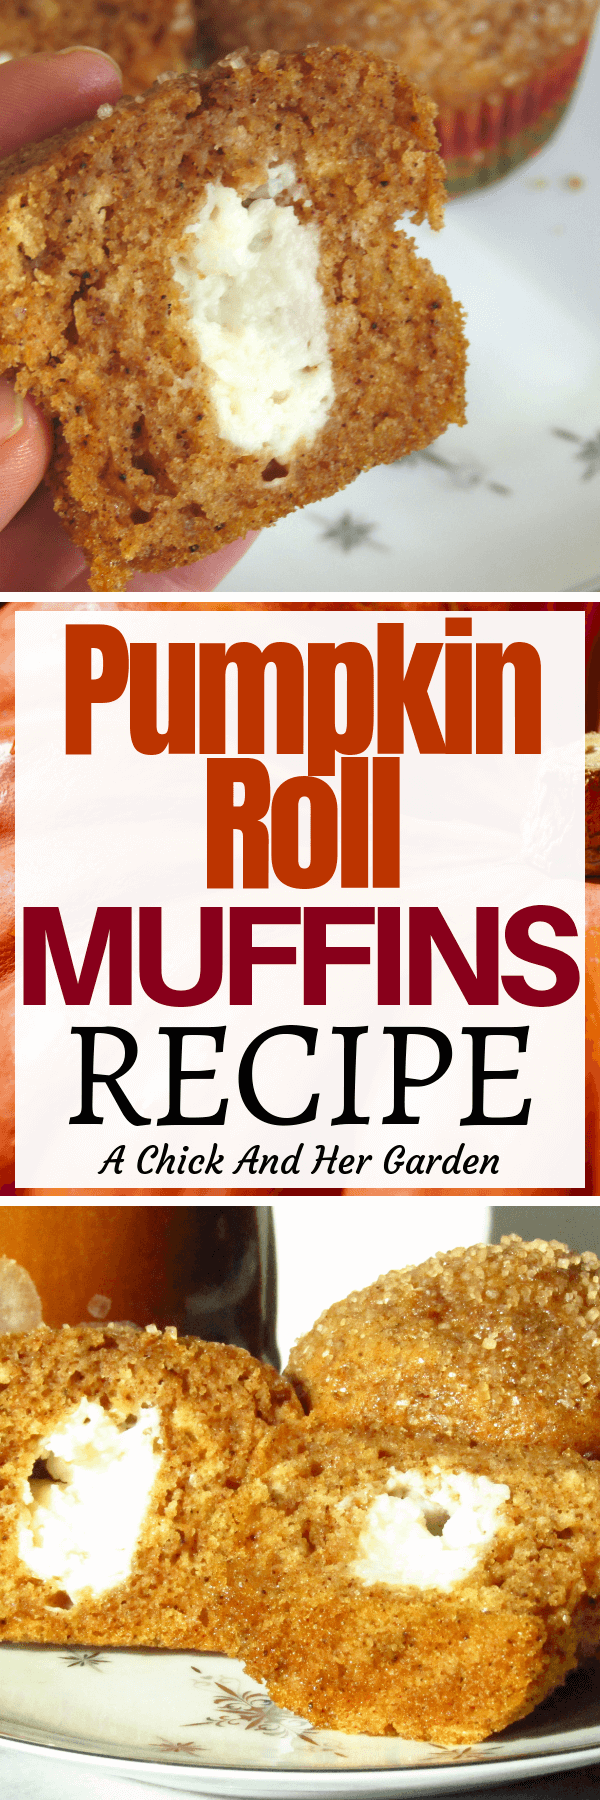 Pumpkin Roll has to be one of my favorite fall desserts, but now I can have it for breakfast! This muffin recipe turned out perfect and is a favorite for breakfast during the fall months! #muffins #pumpkinrecipes #breakfastrecipes #fallrecipes #baking #achickandhergarden